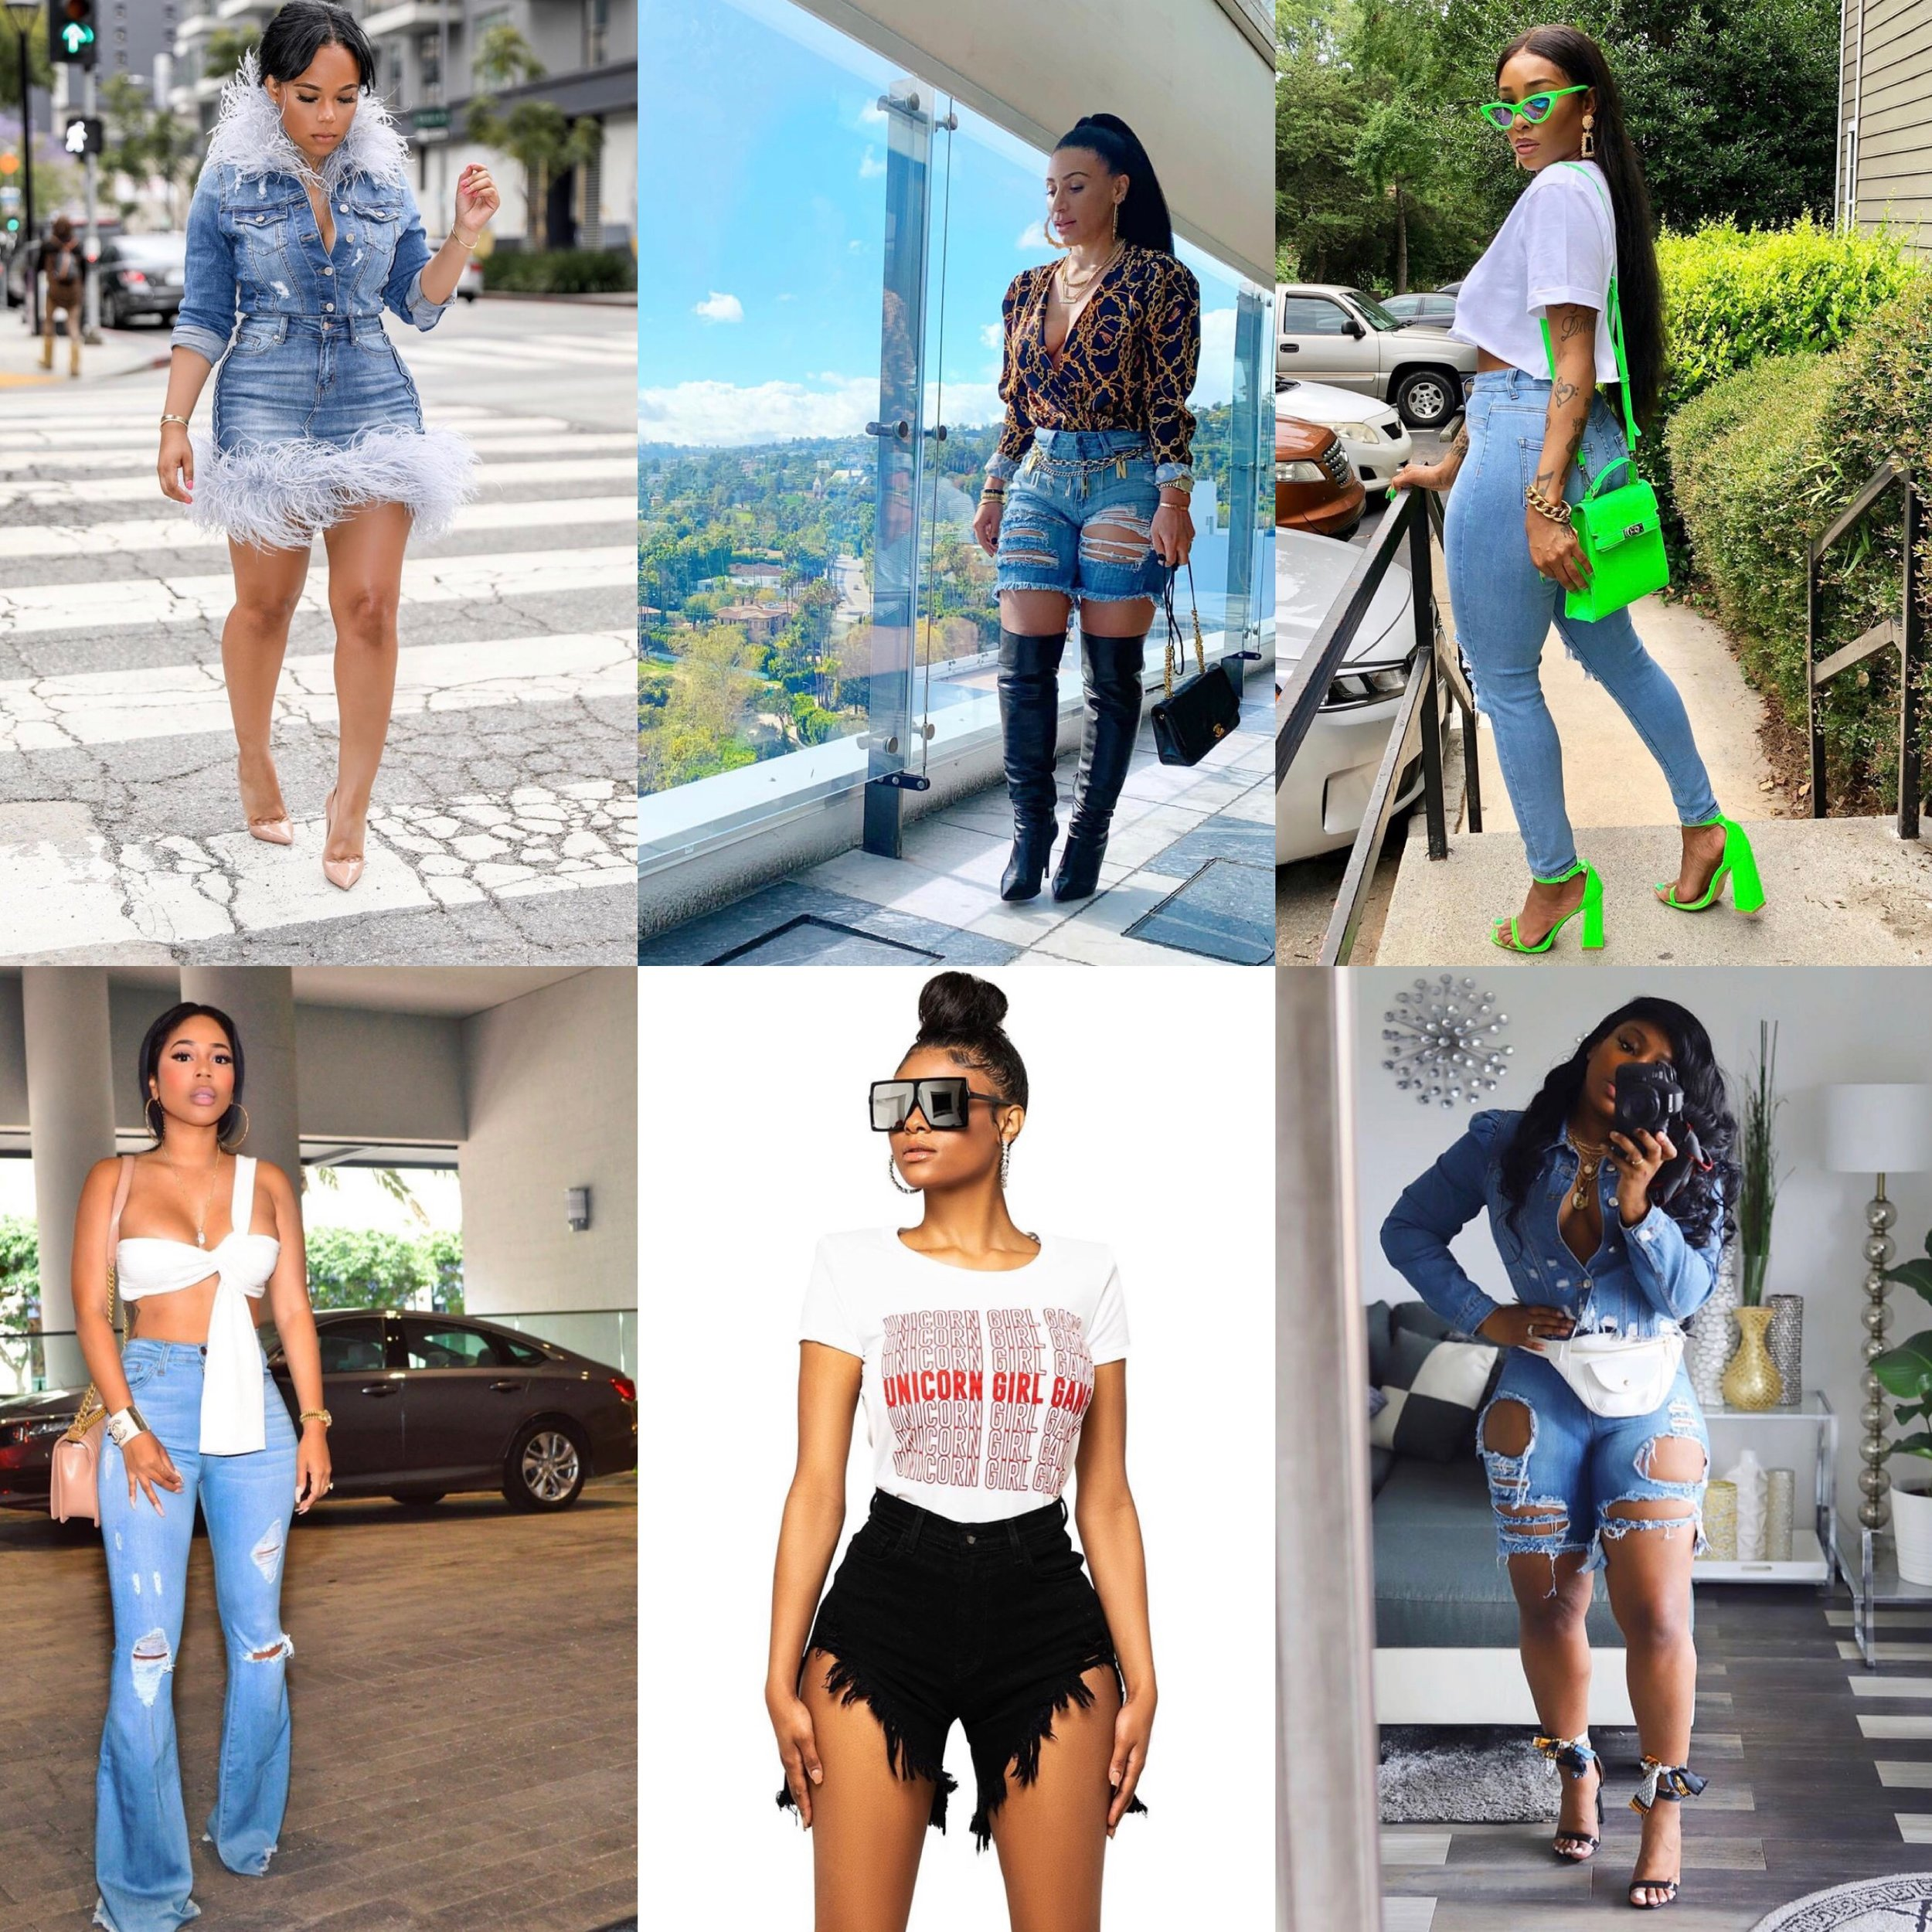 DISTRESSED IS THE BEST -If wearing denim, don't stress; distress. Thick thighs save lives, and how do we reward them? By showing them off of course! -